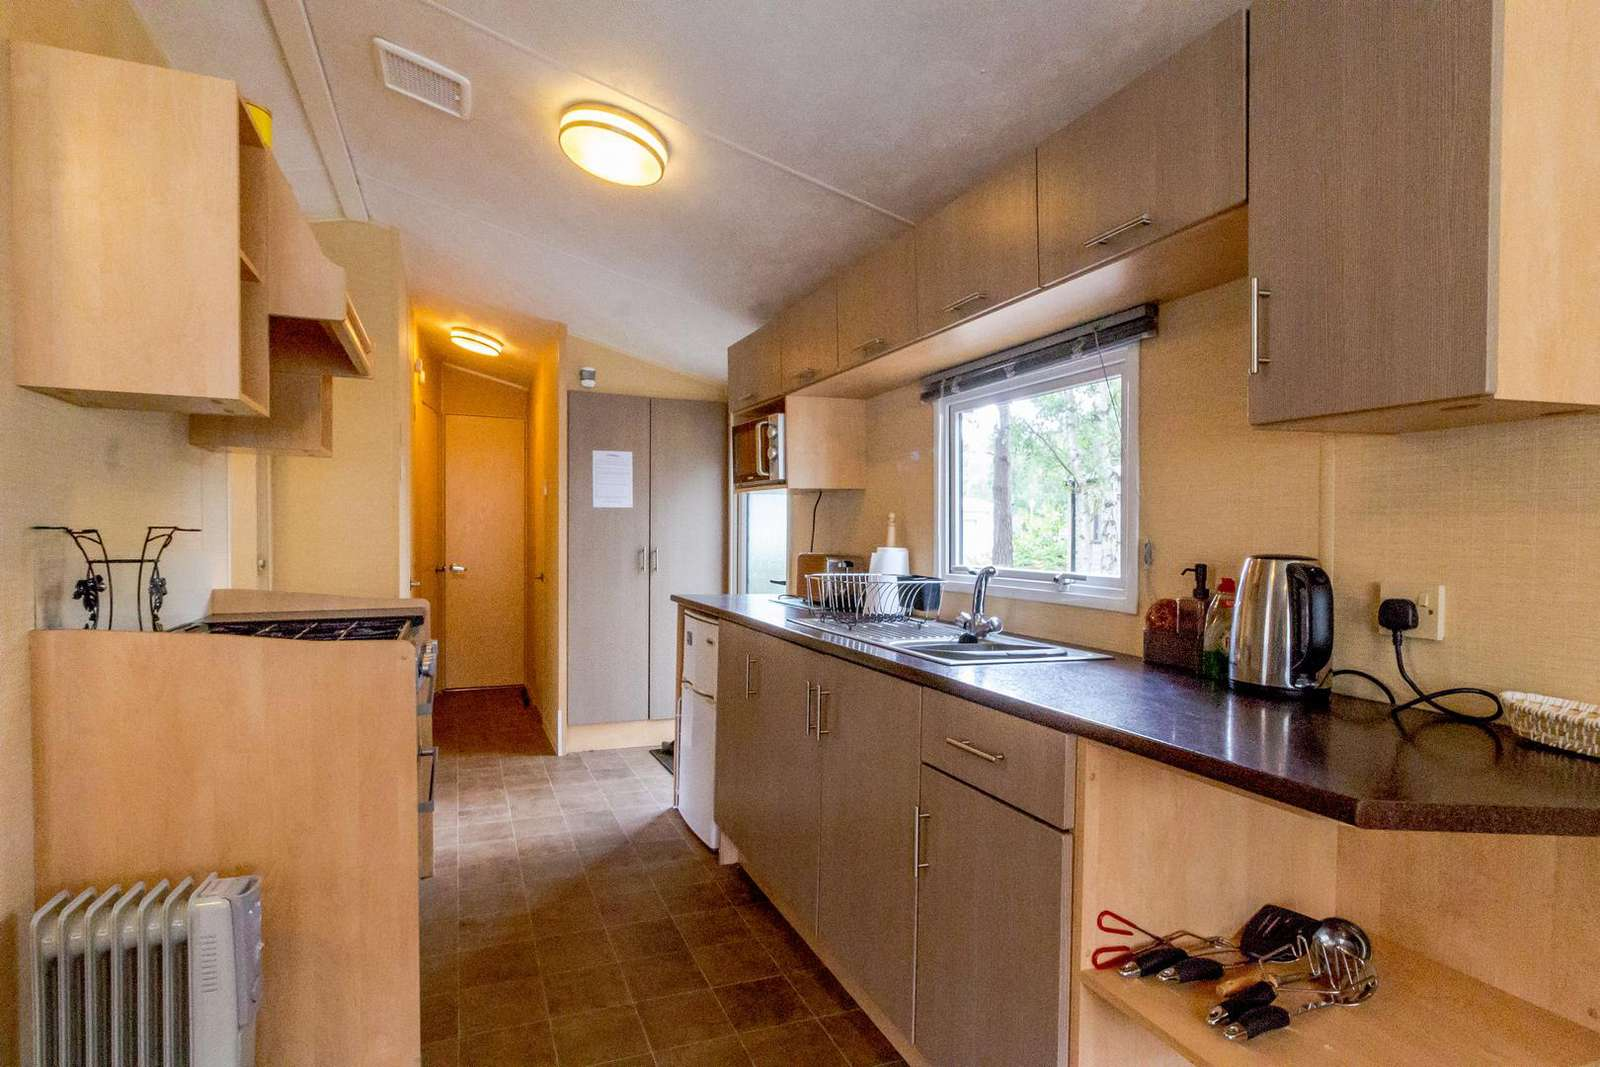 Fully equipped kitchen, perfect for self-catering accommodation